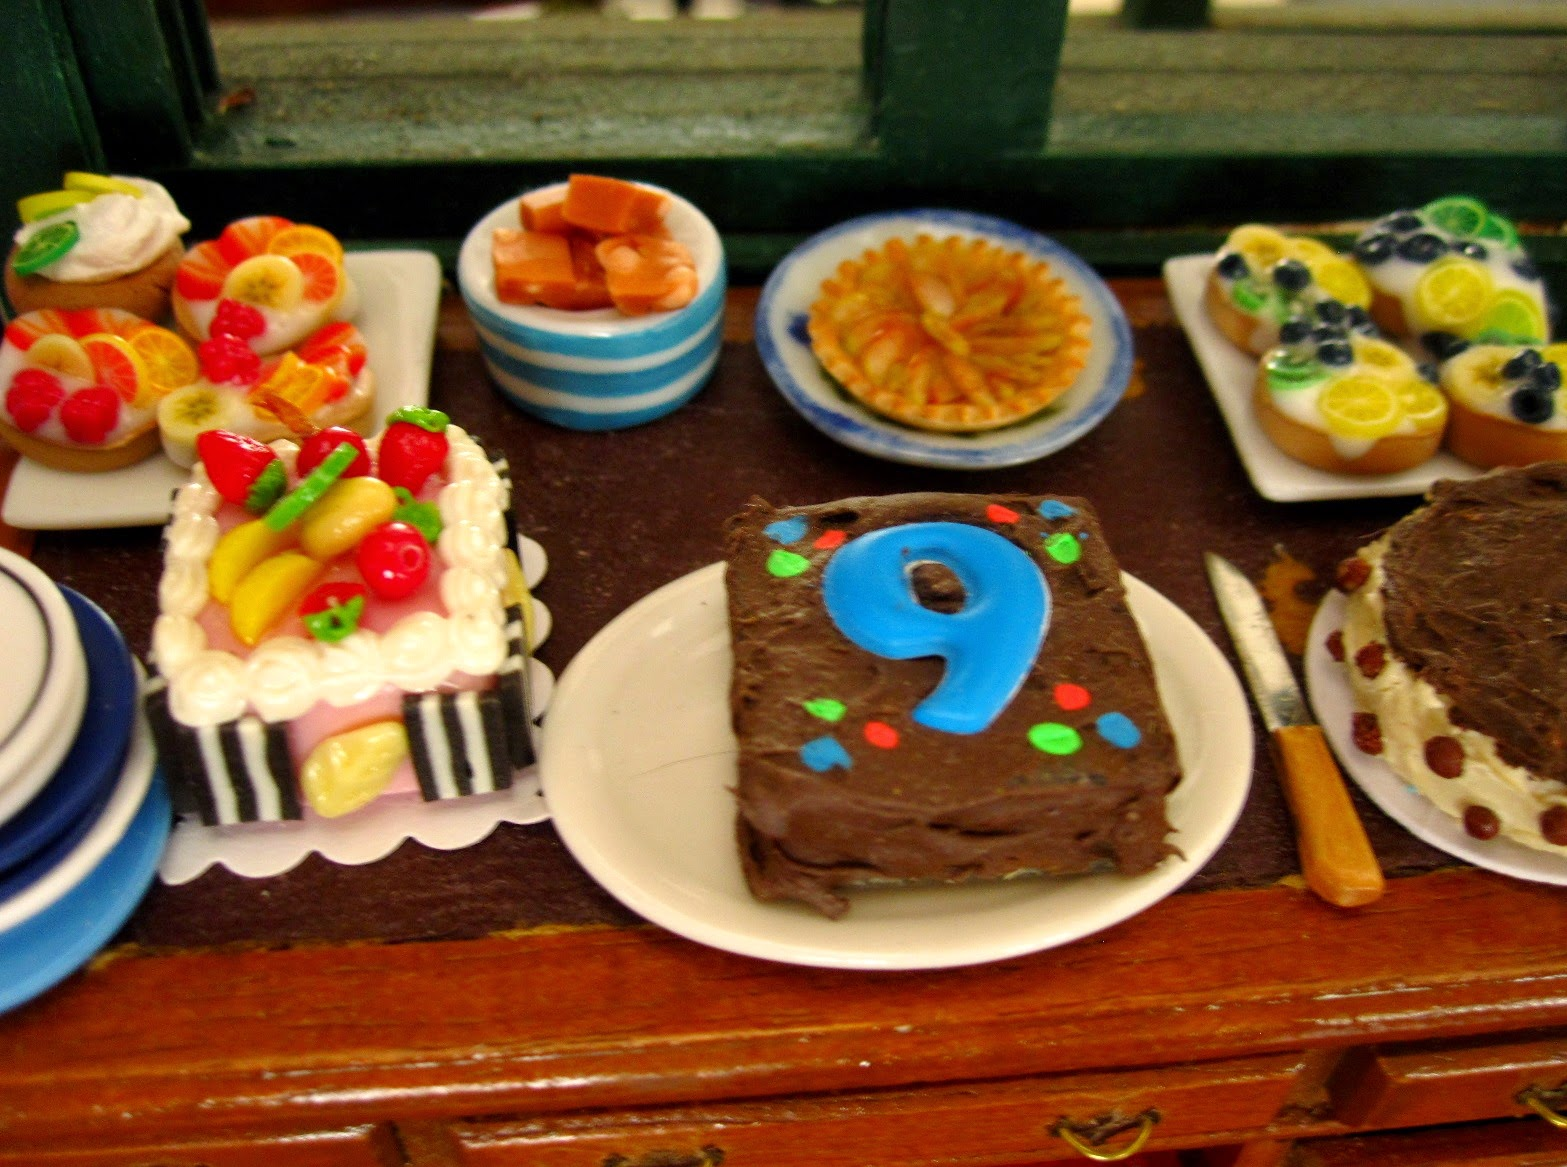 Selection of miniature dolls' house cakes arranged on a desk, including one with the number 9 iced on the top of it.